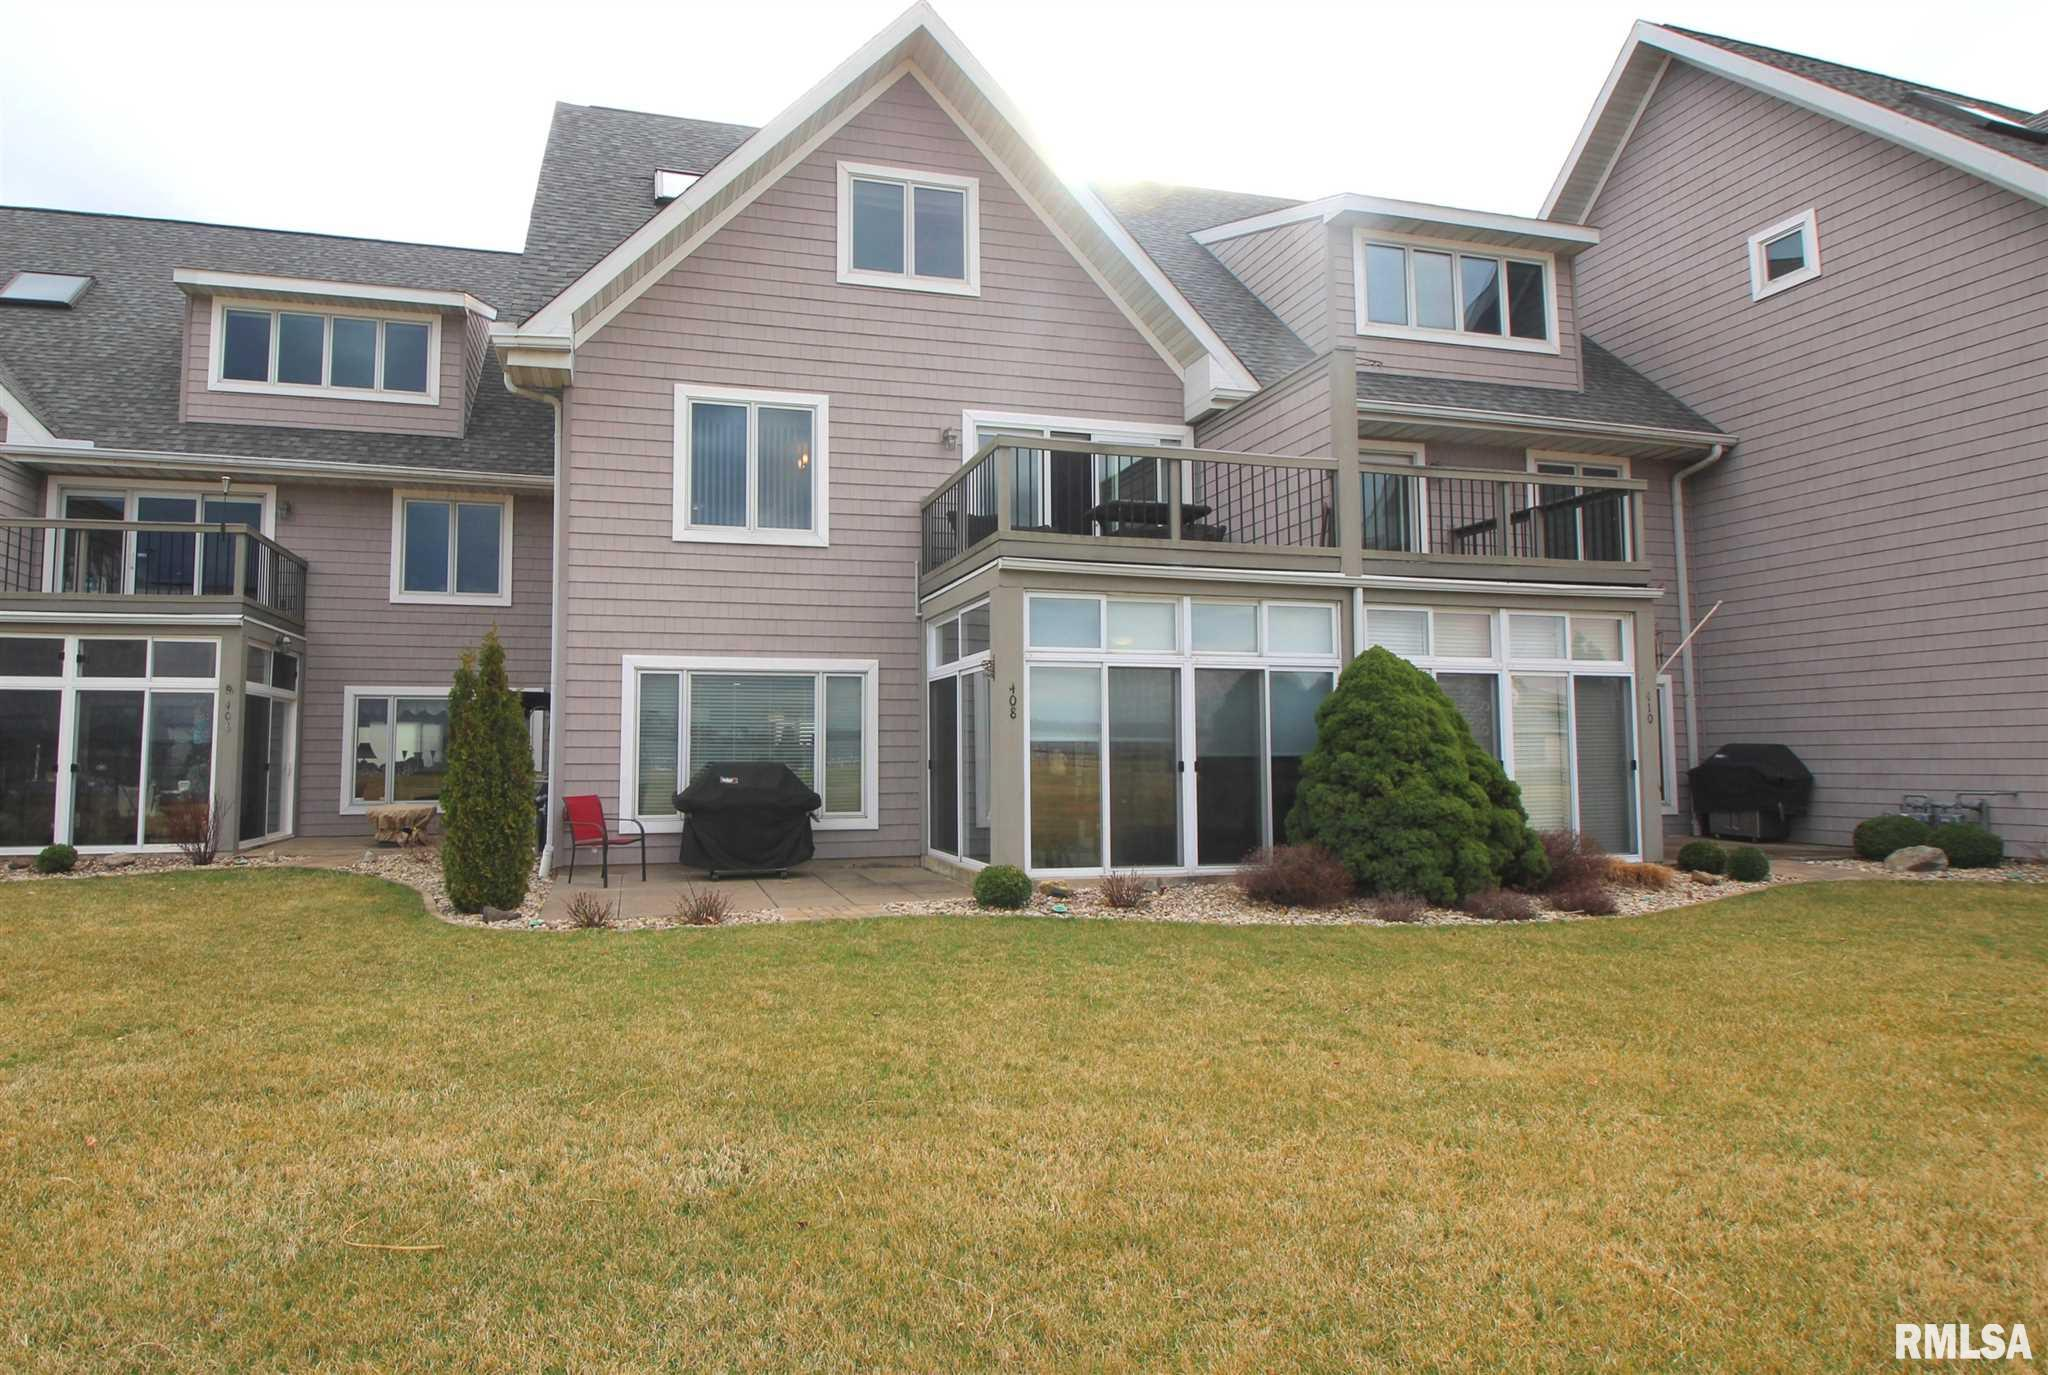 408 HARBOR POINTE Property Photo - East Peoria, IL real estate listing